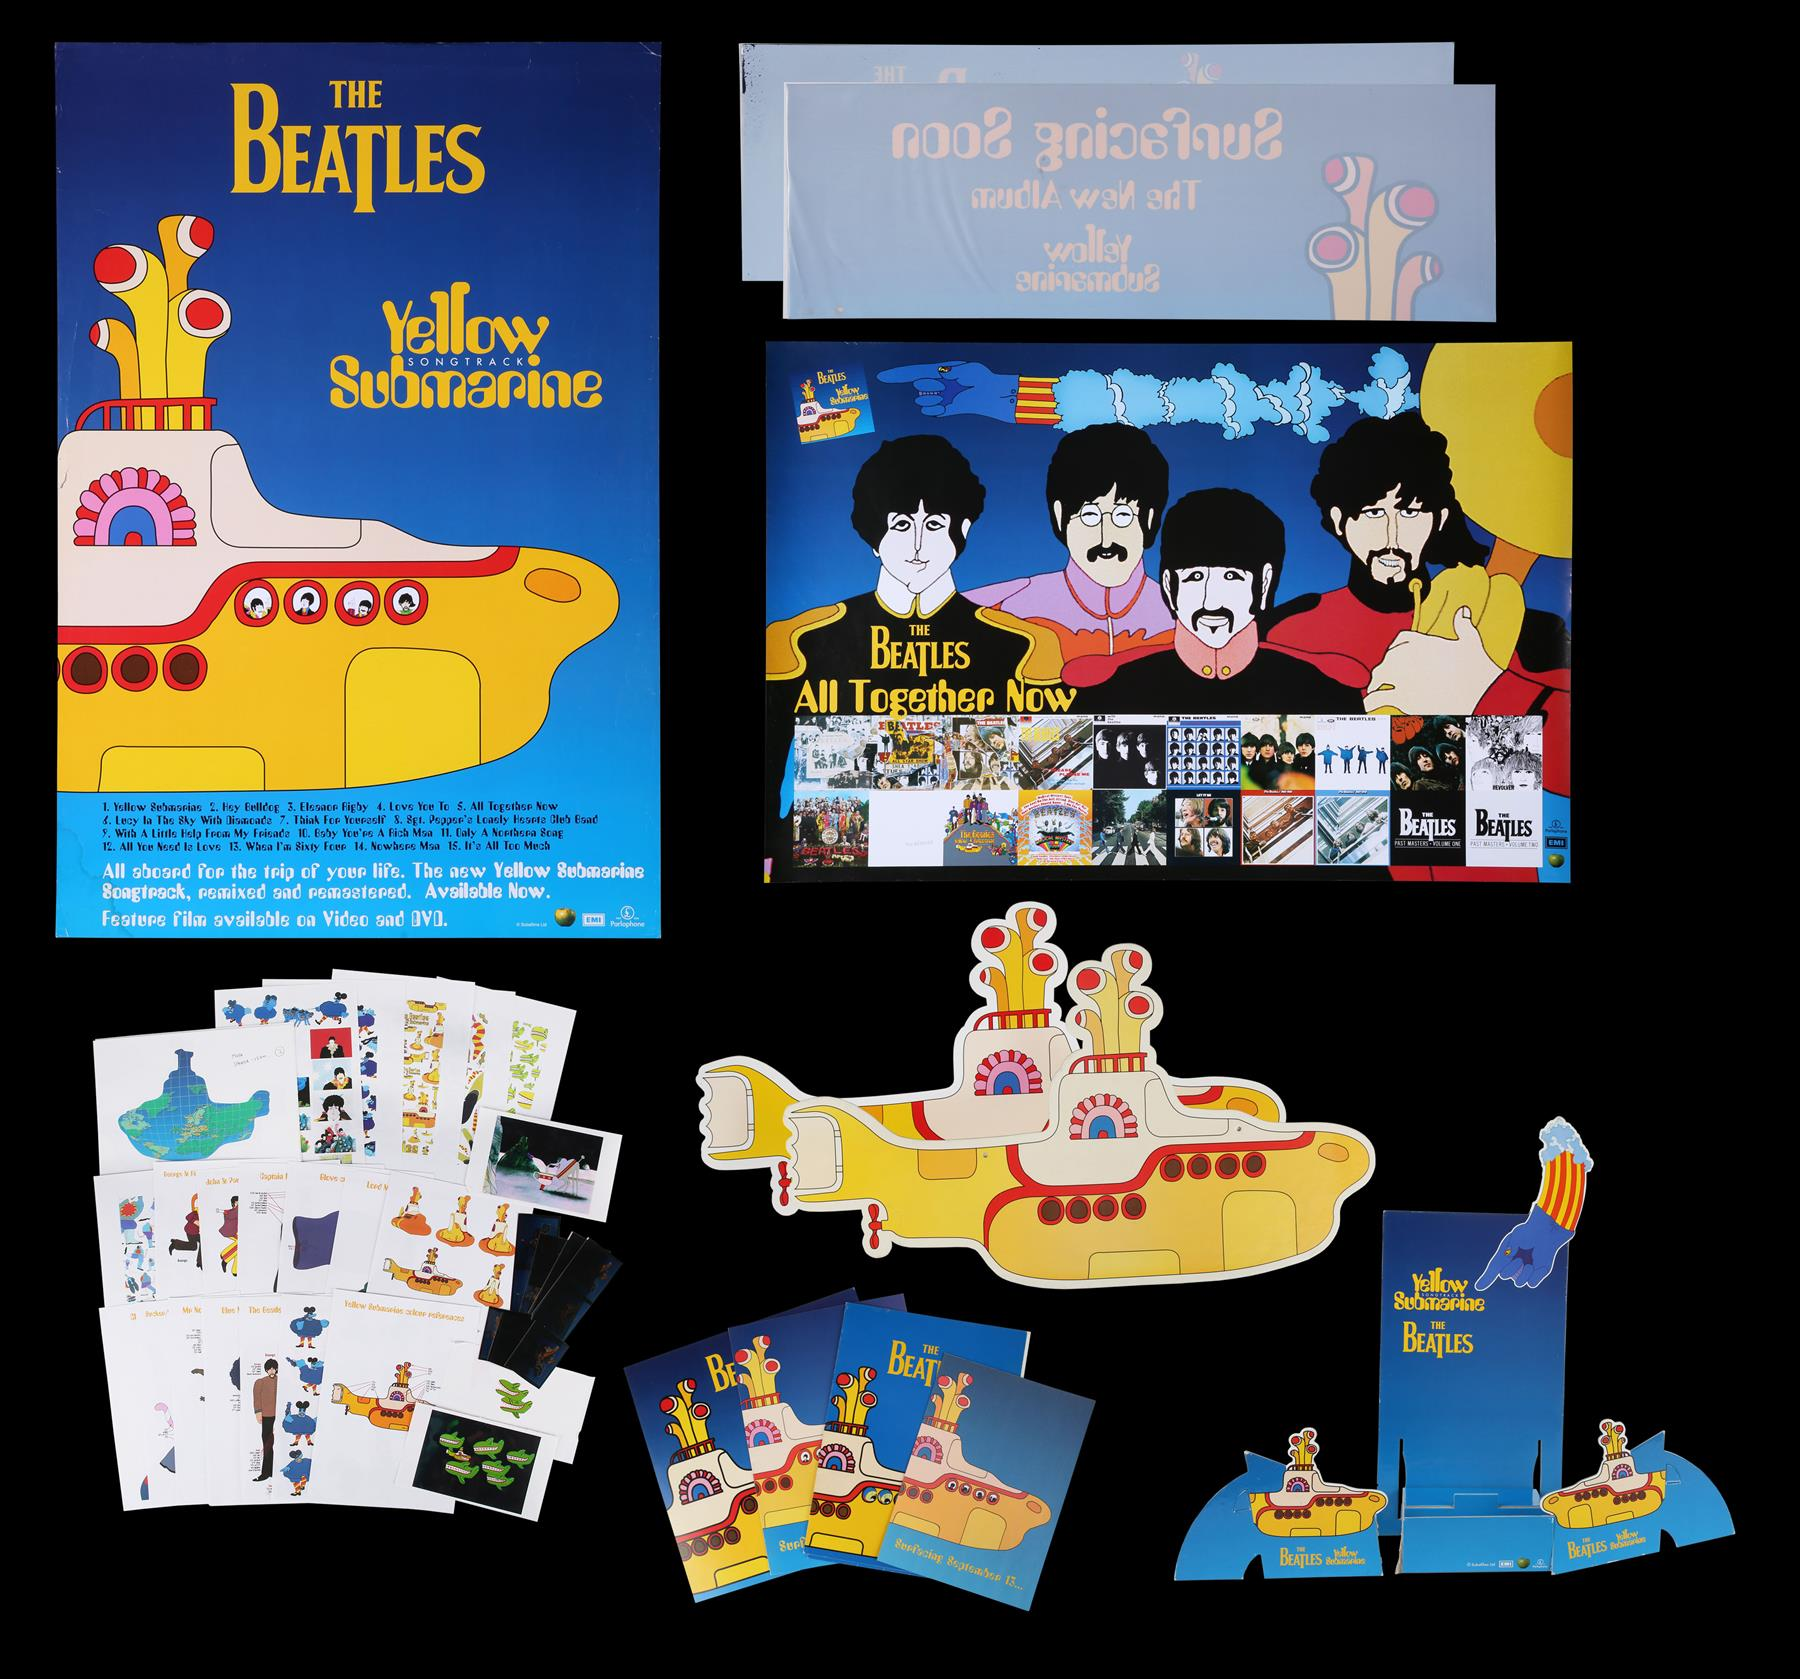 YELLOW SUBMARINE (1968) - Promotional and Marketing Items, 1999